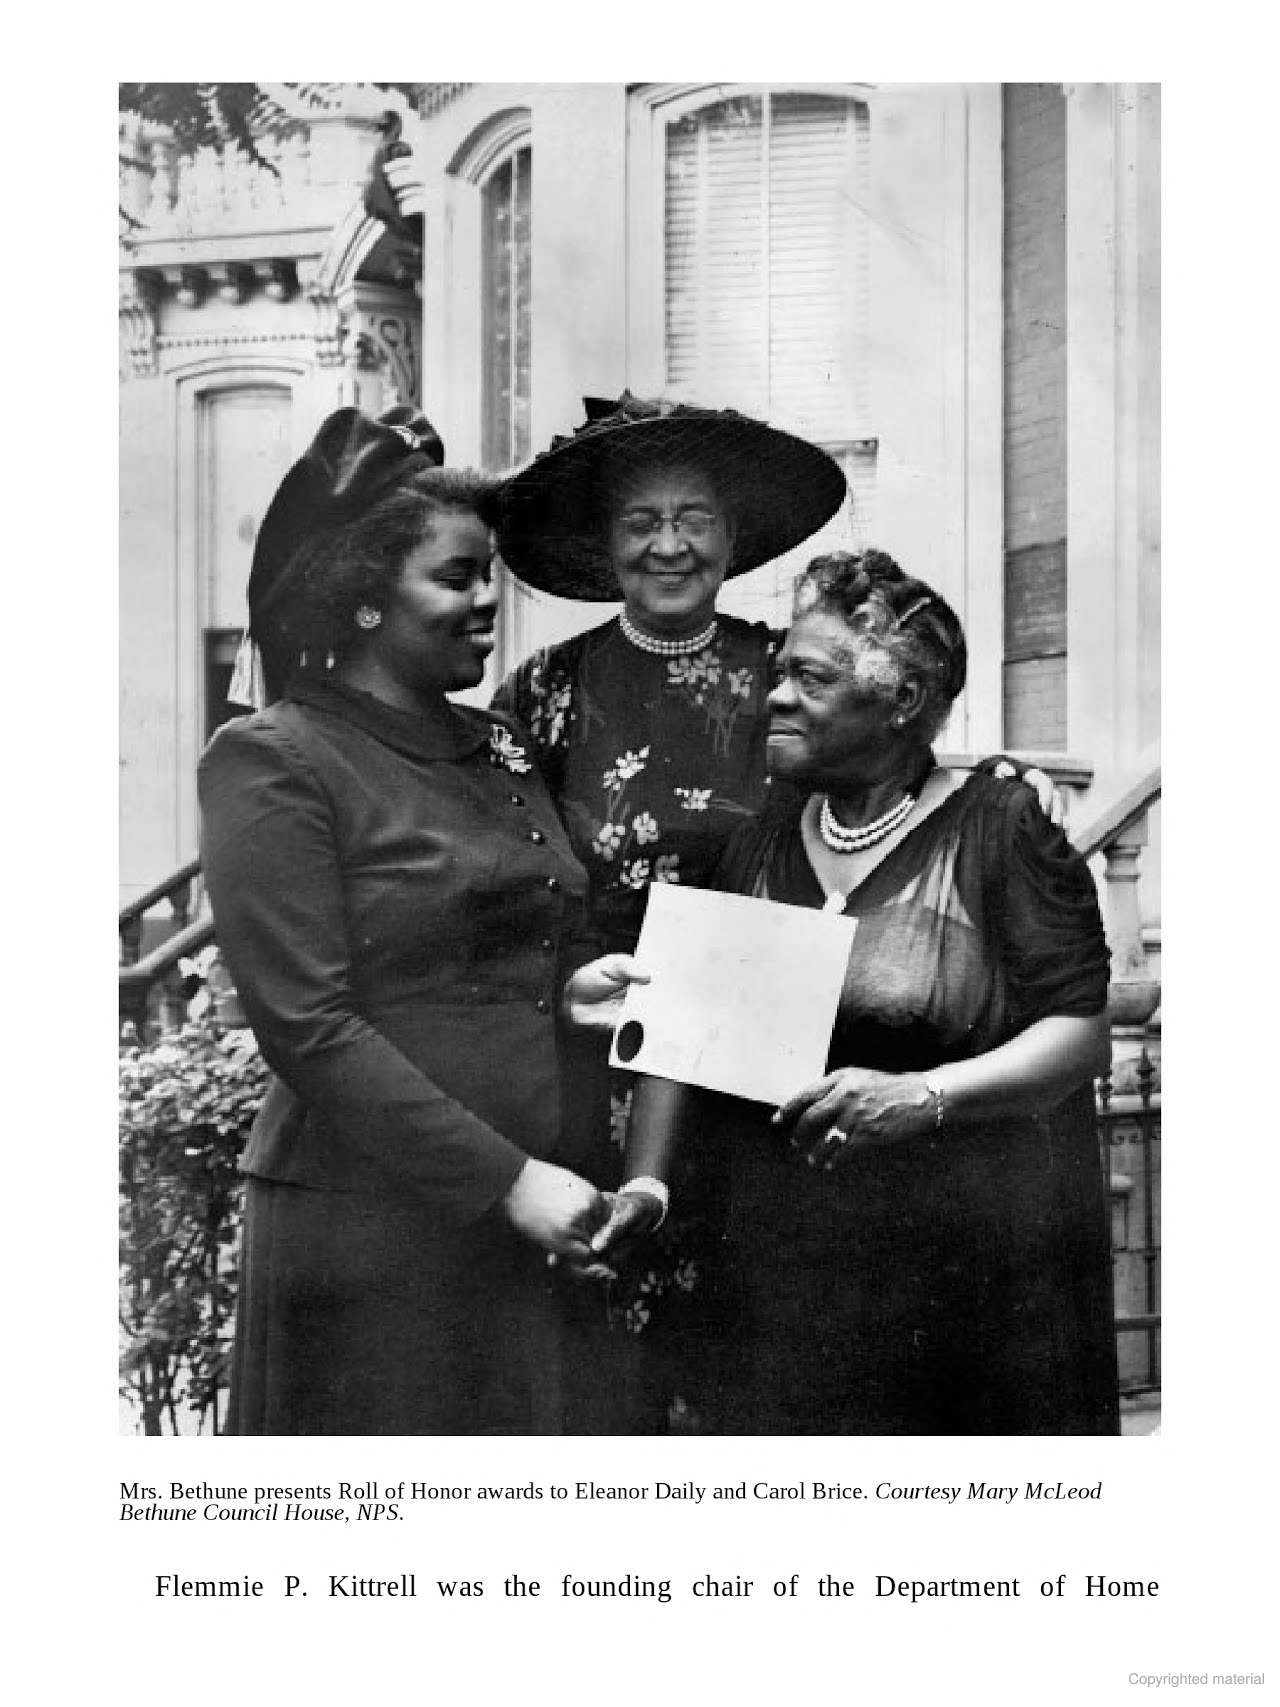 Mary McLeod Bethune in Washington, DC-Activism and Education in Logan Circle (Dr. Ida E. Jones) 05